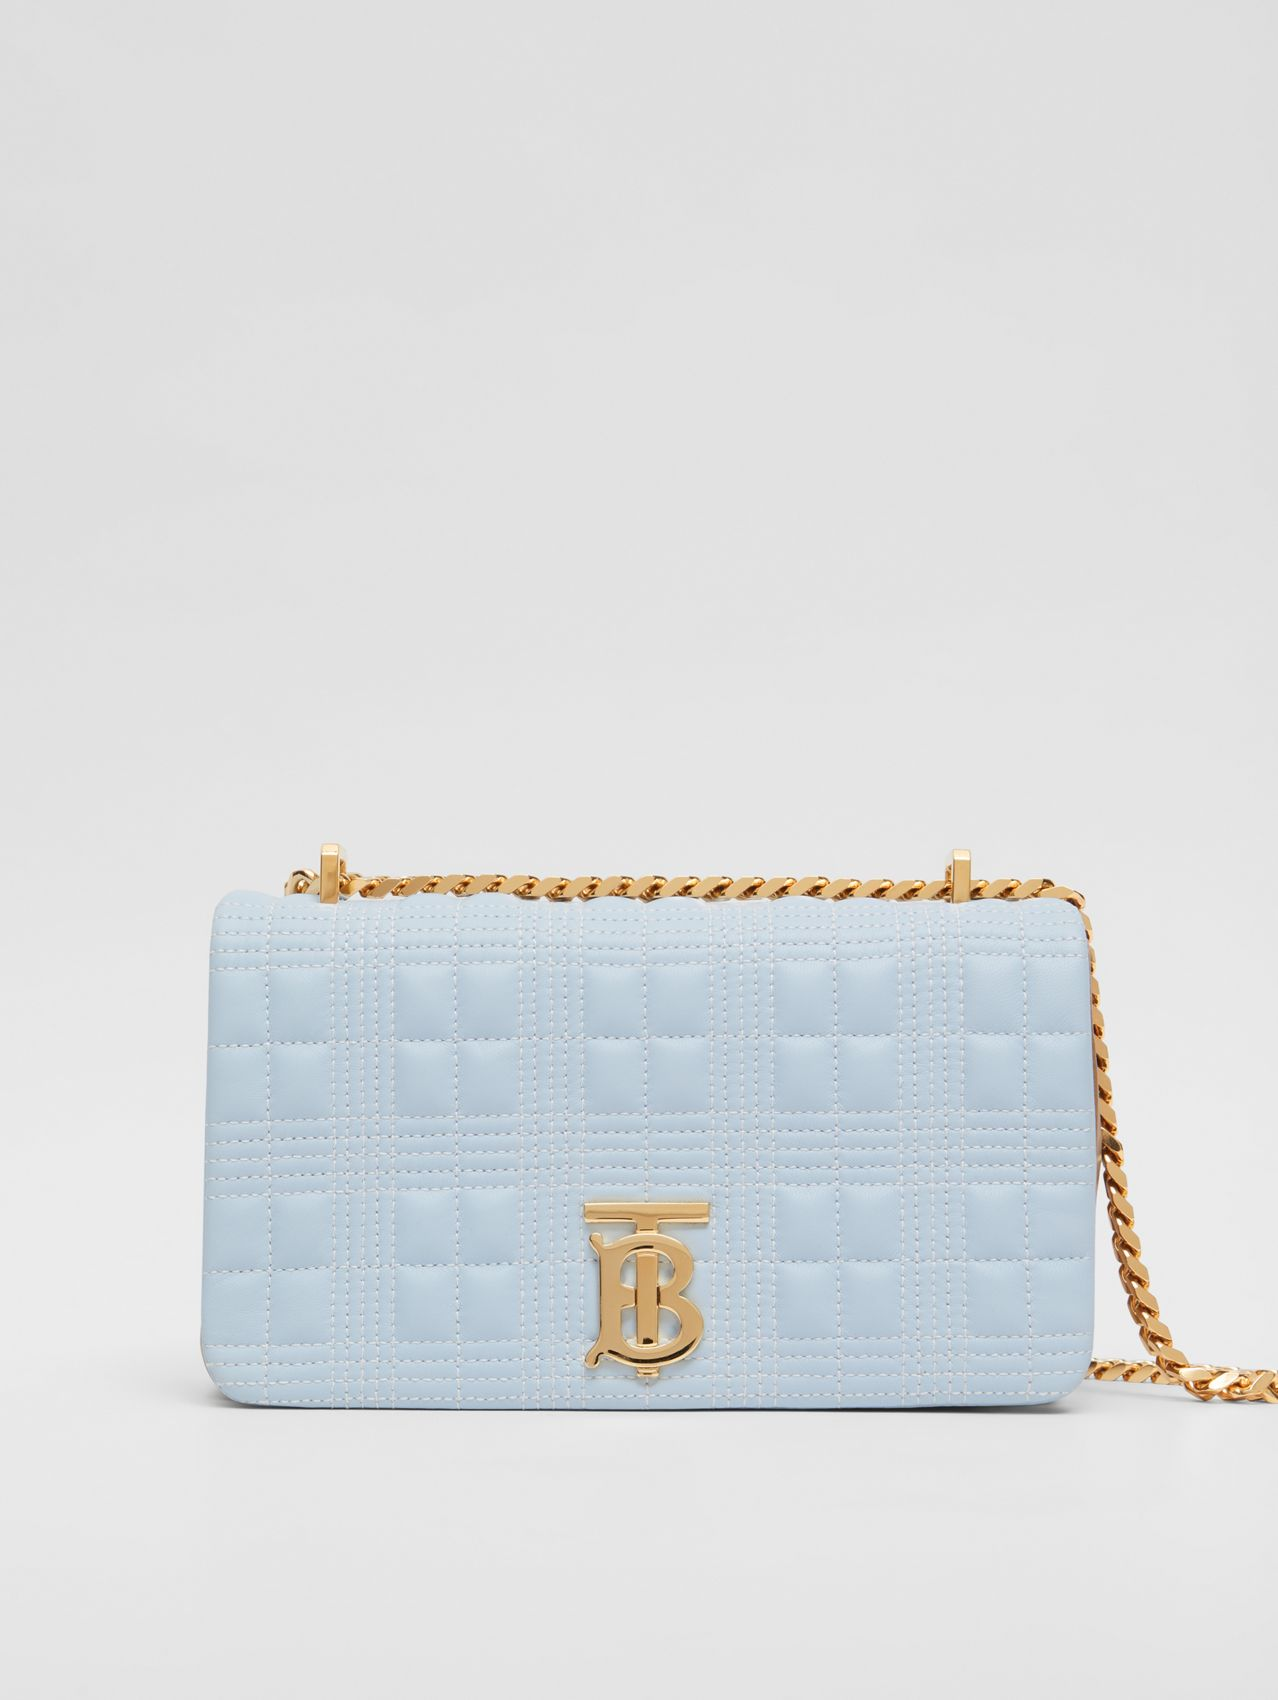 Small Quilted Tri-tone Lambskin Lola Bag (Pale Blue/camel/black)